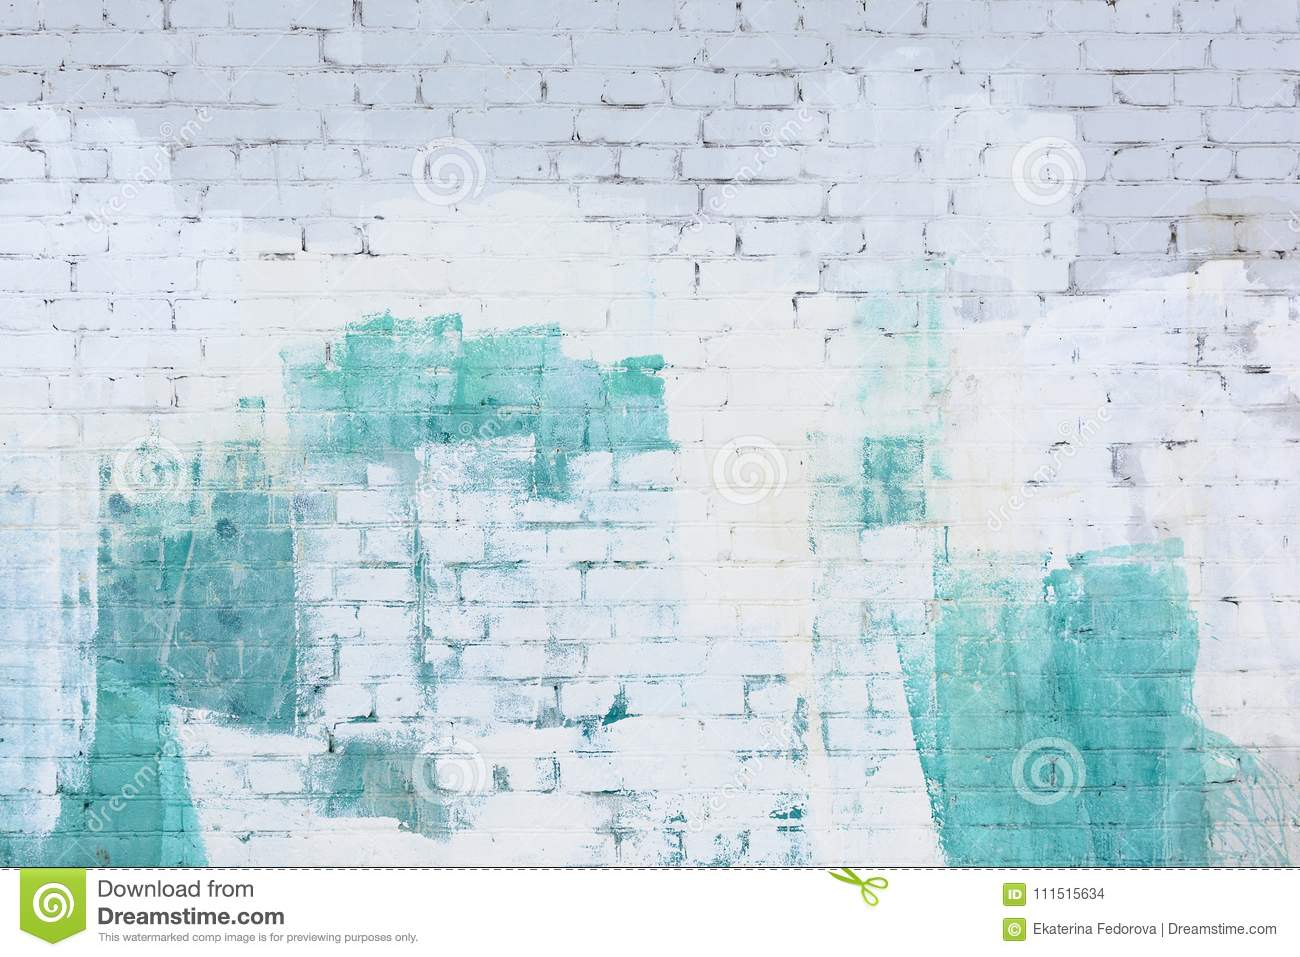 A brick wall painted abstract with white and turquoise paint. Background, texture.